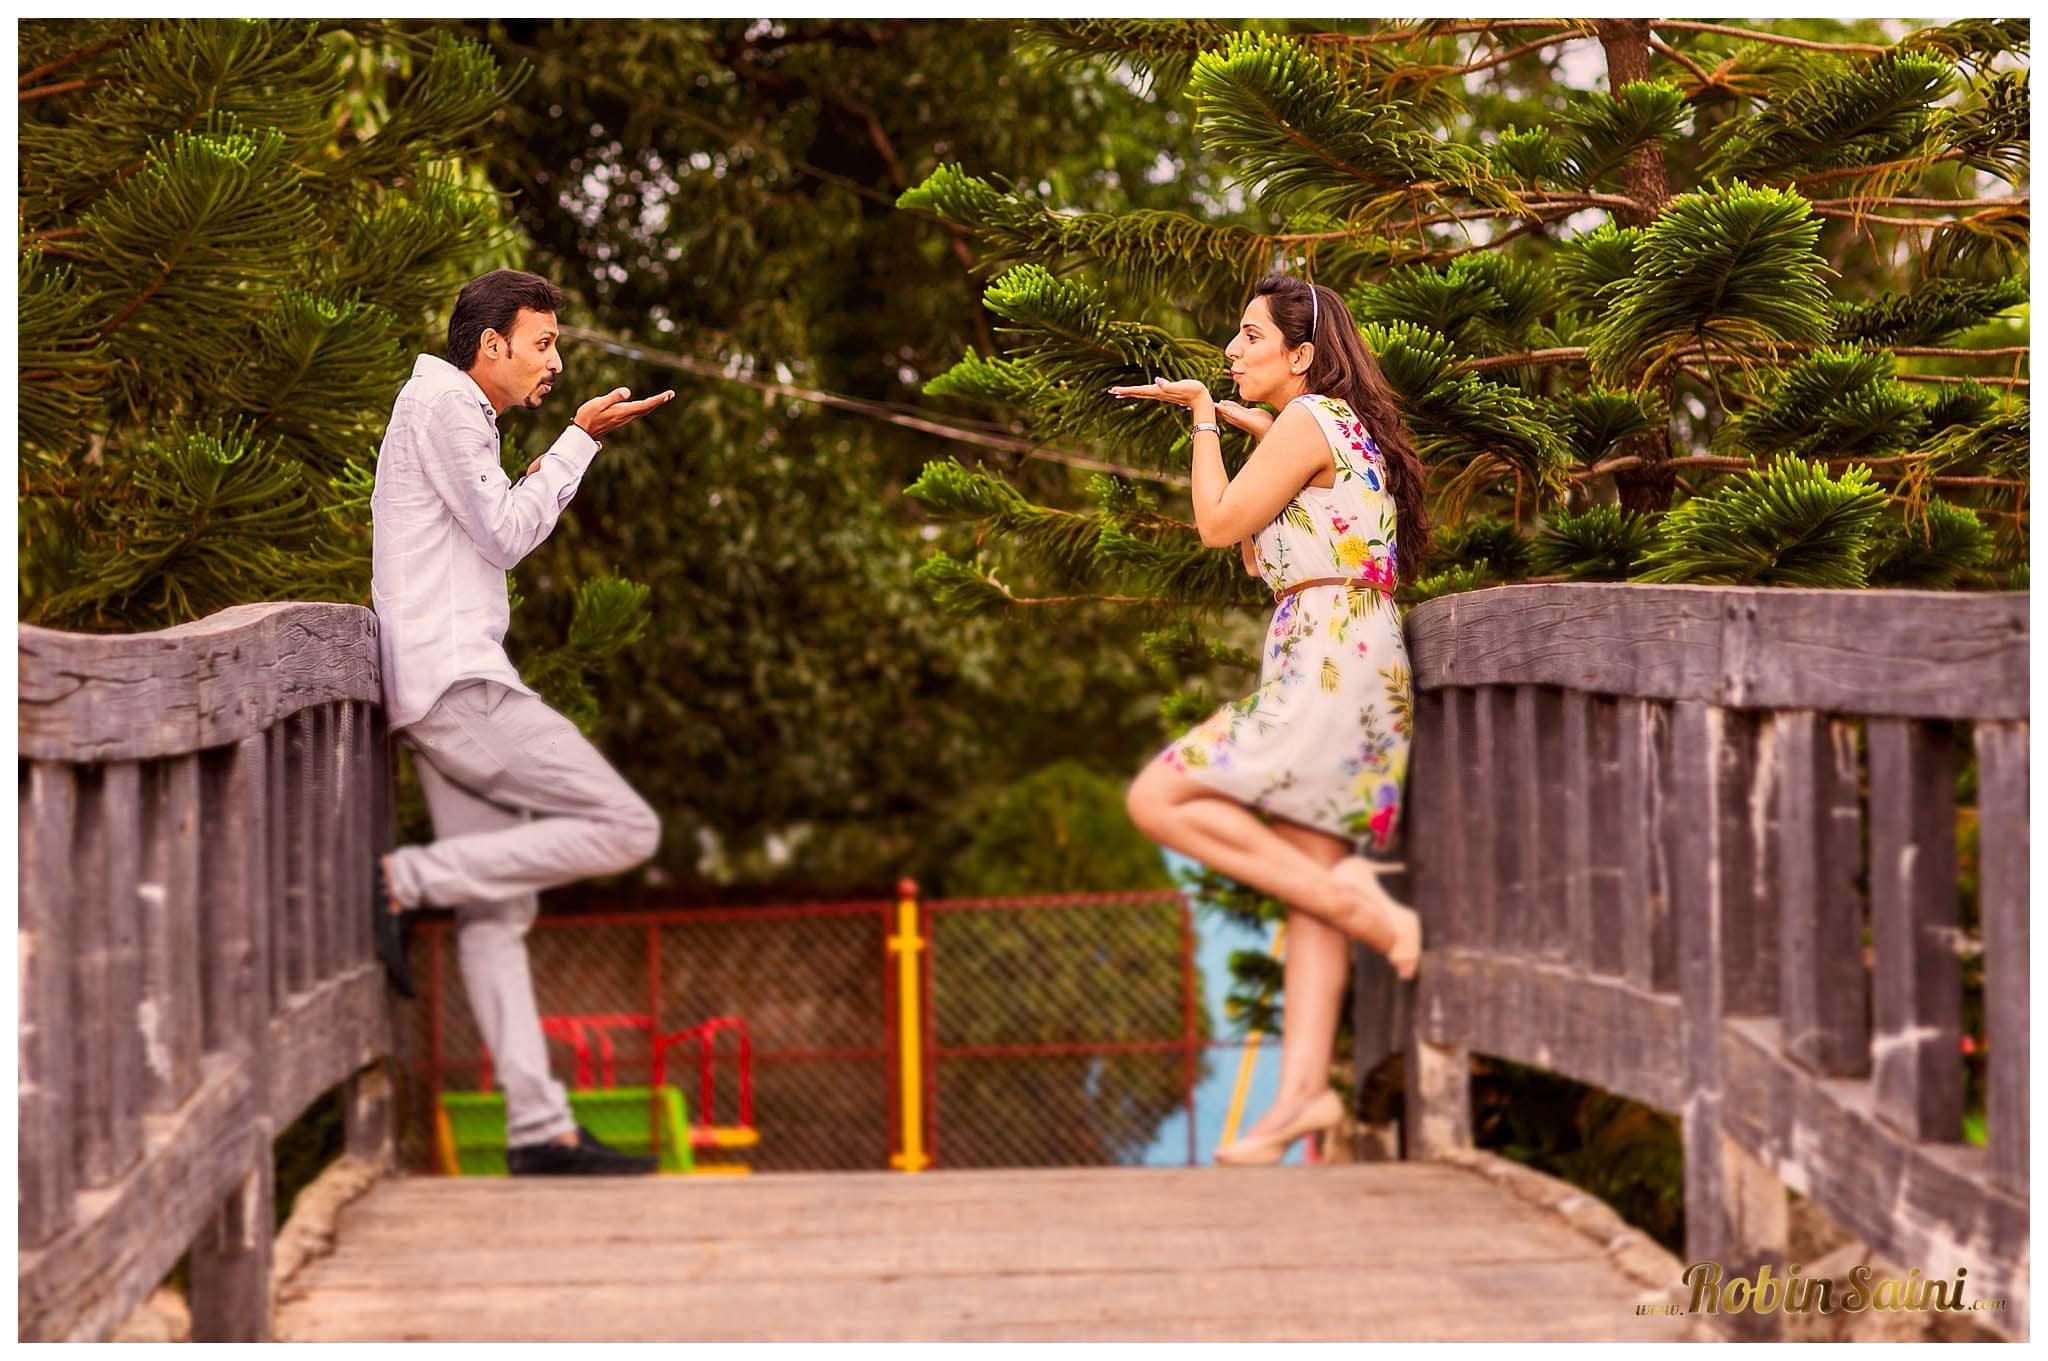 pre wedding photography:robin saini photography